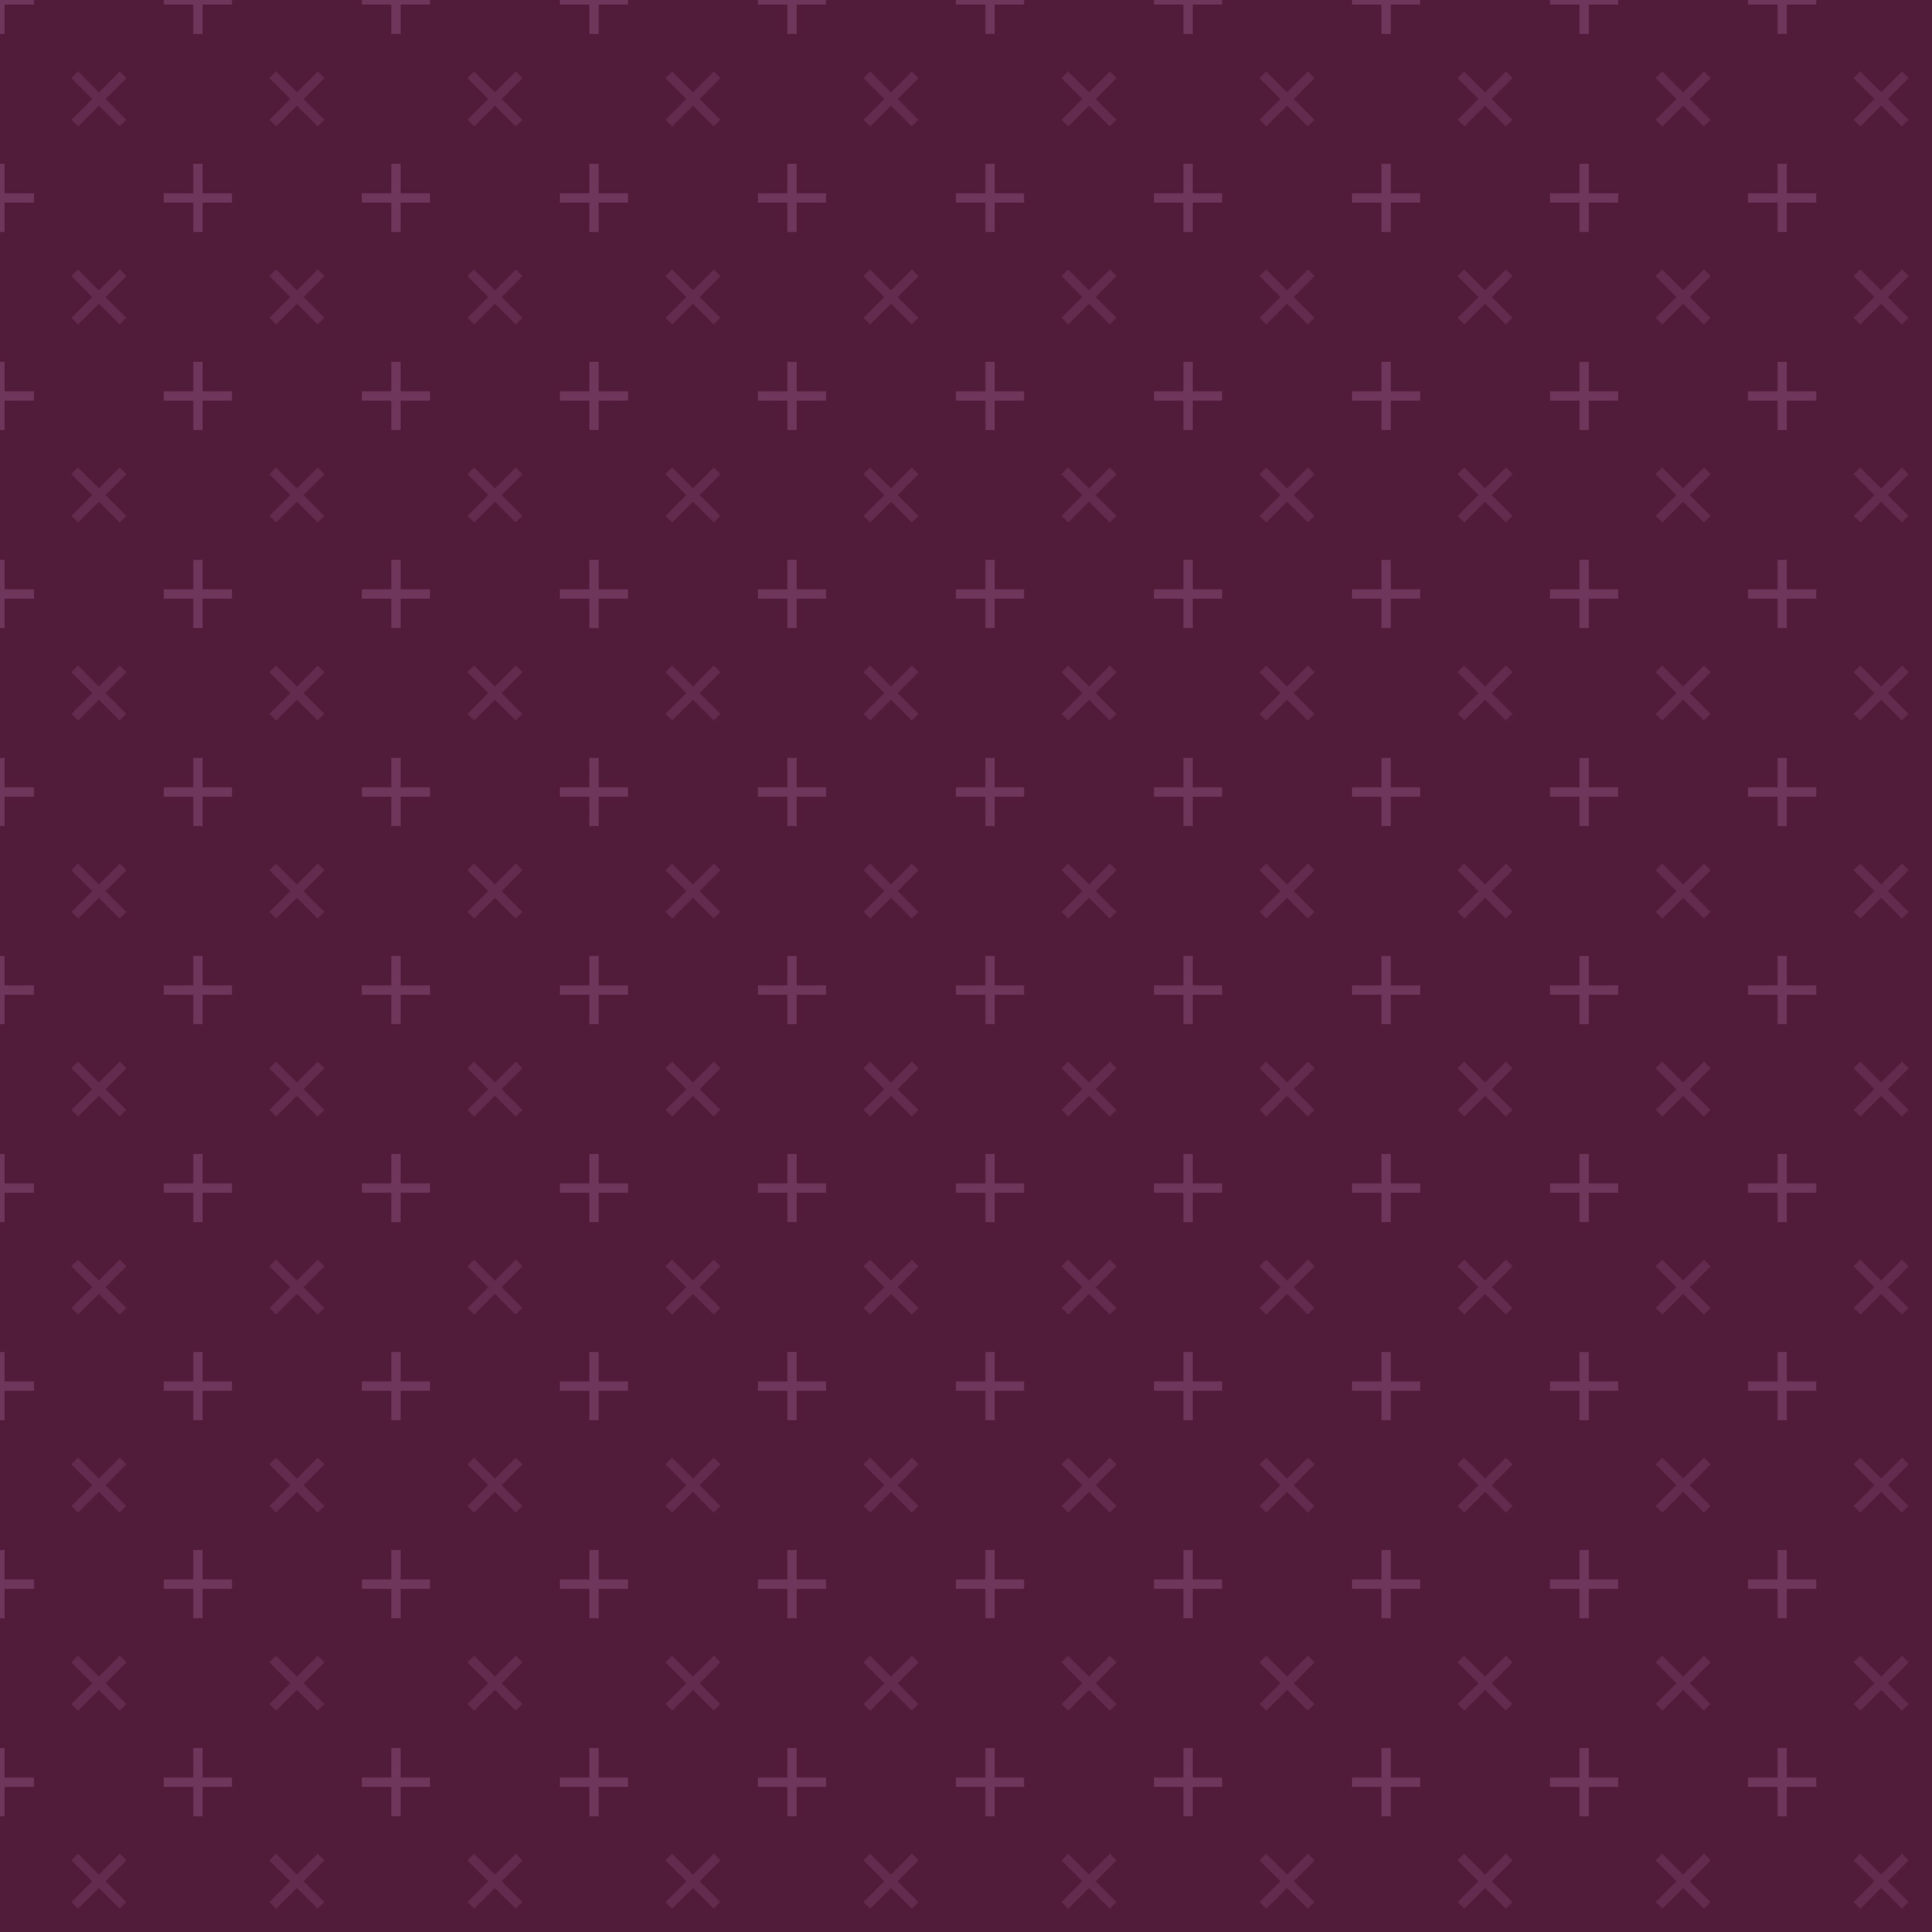 101090 download wallpaper Textures, Texture, Crosses, Tic, Purple, Violet, Patterns screensavers and pictures for free